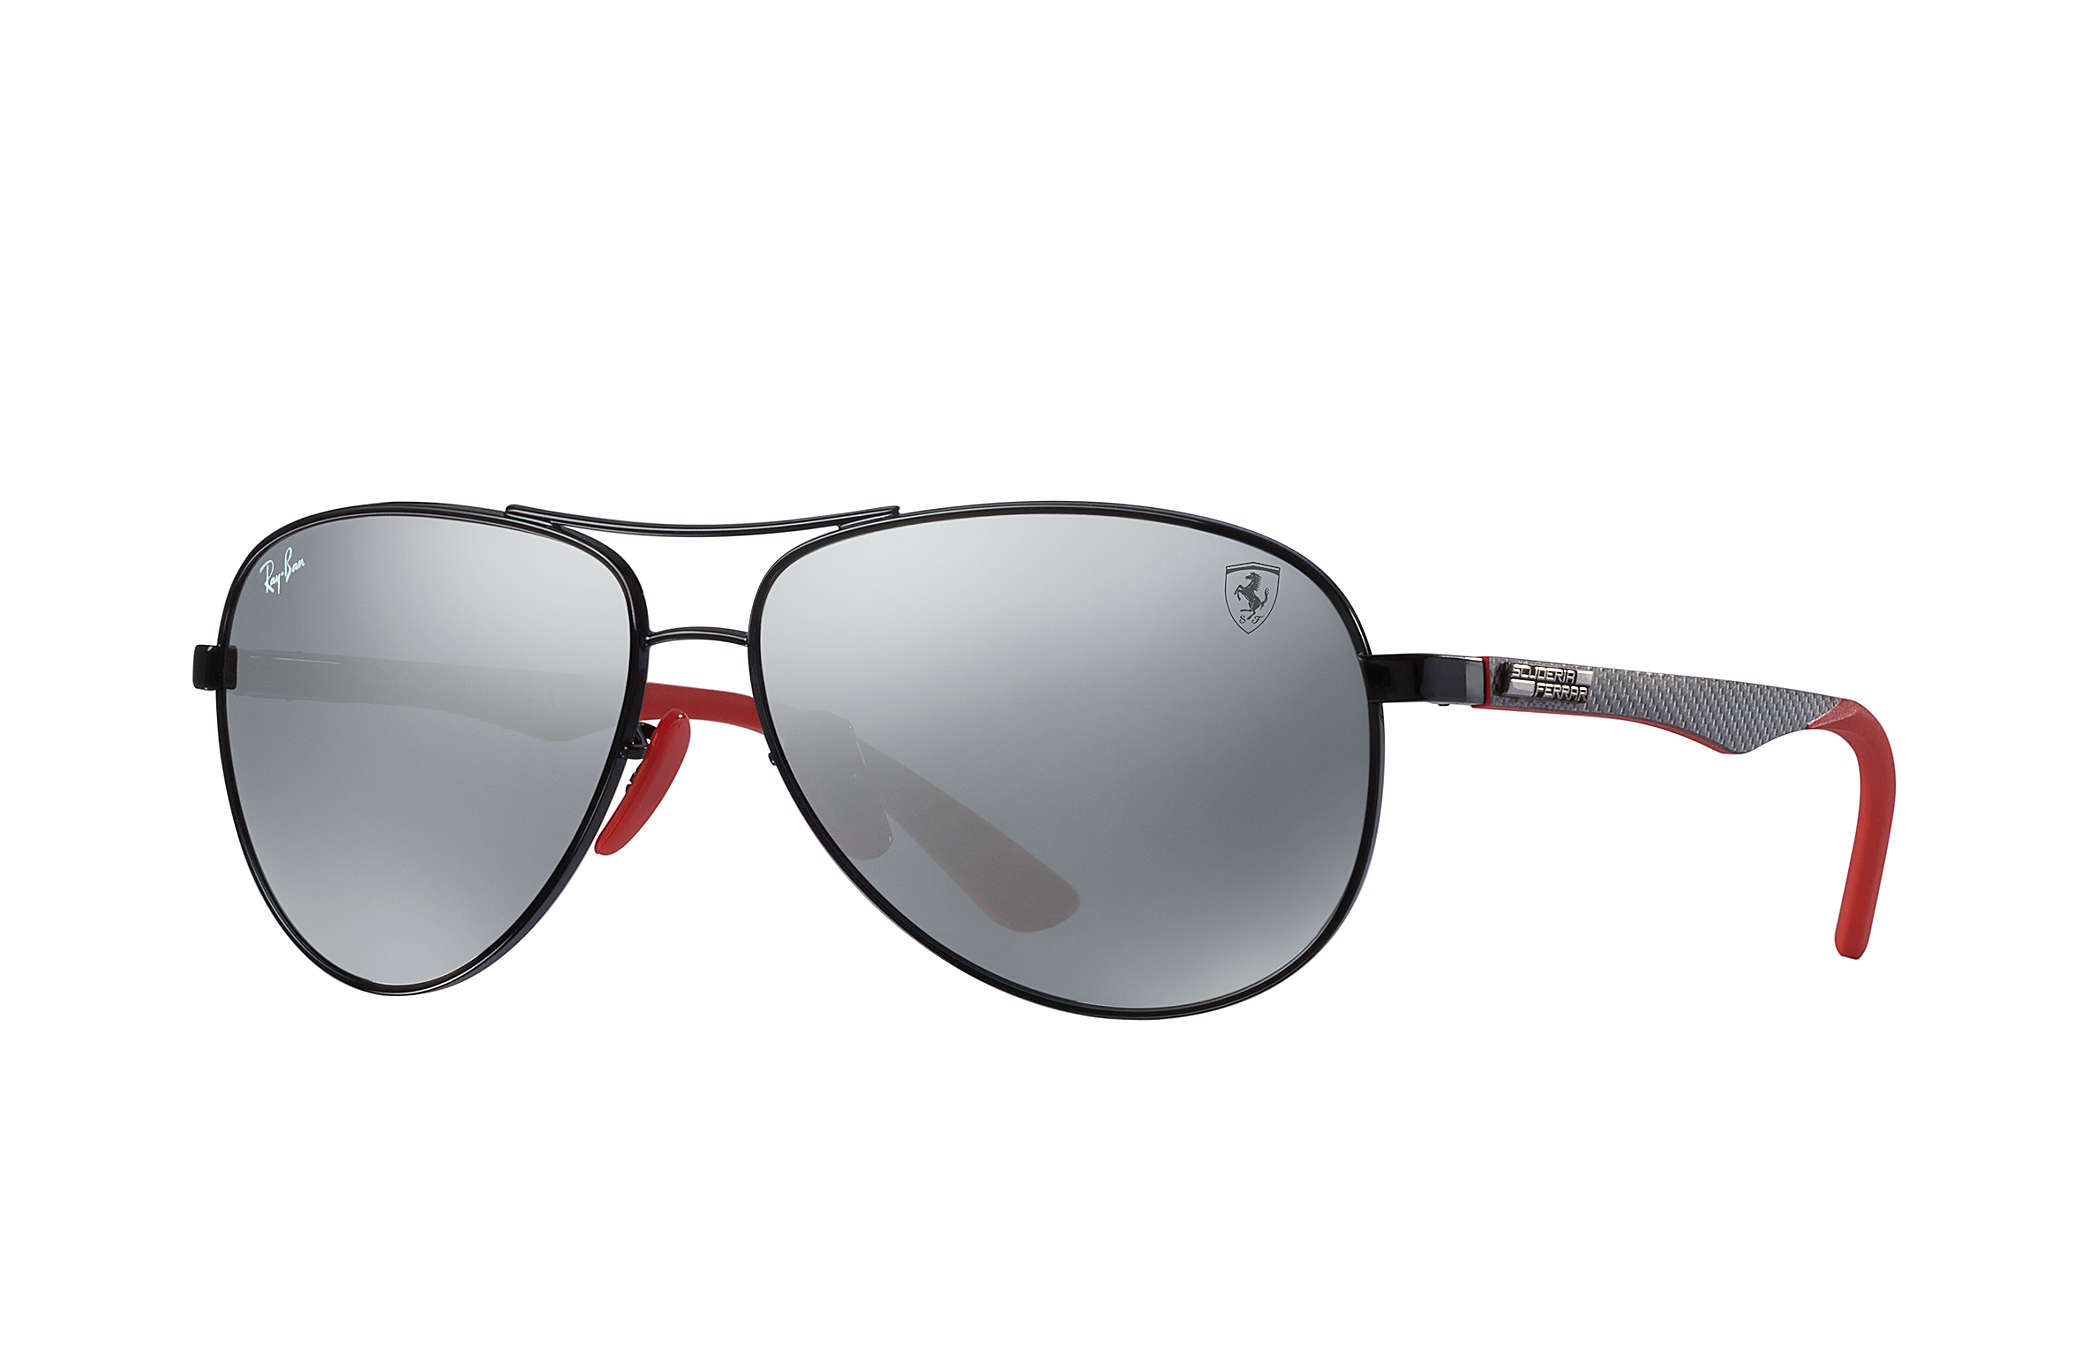 47b2ae108b0813 Details about New Ray Ban RB8313M-F0096G-61 Black Grey   Silver Mirror 61mm  Sunglasses